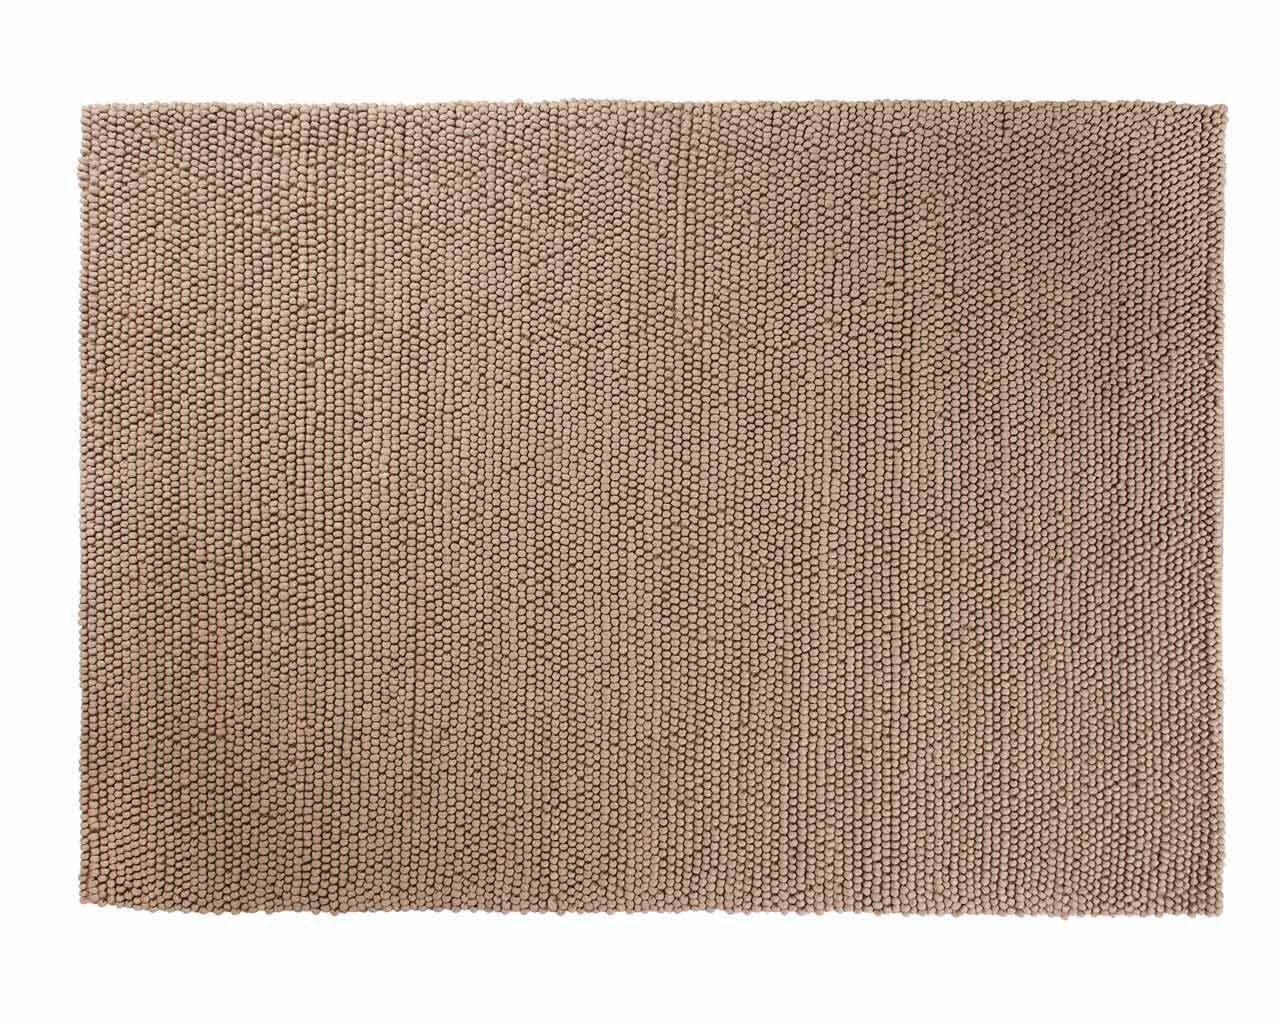 camel colour woollen carpet